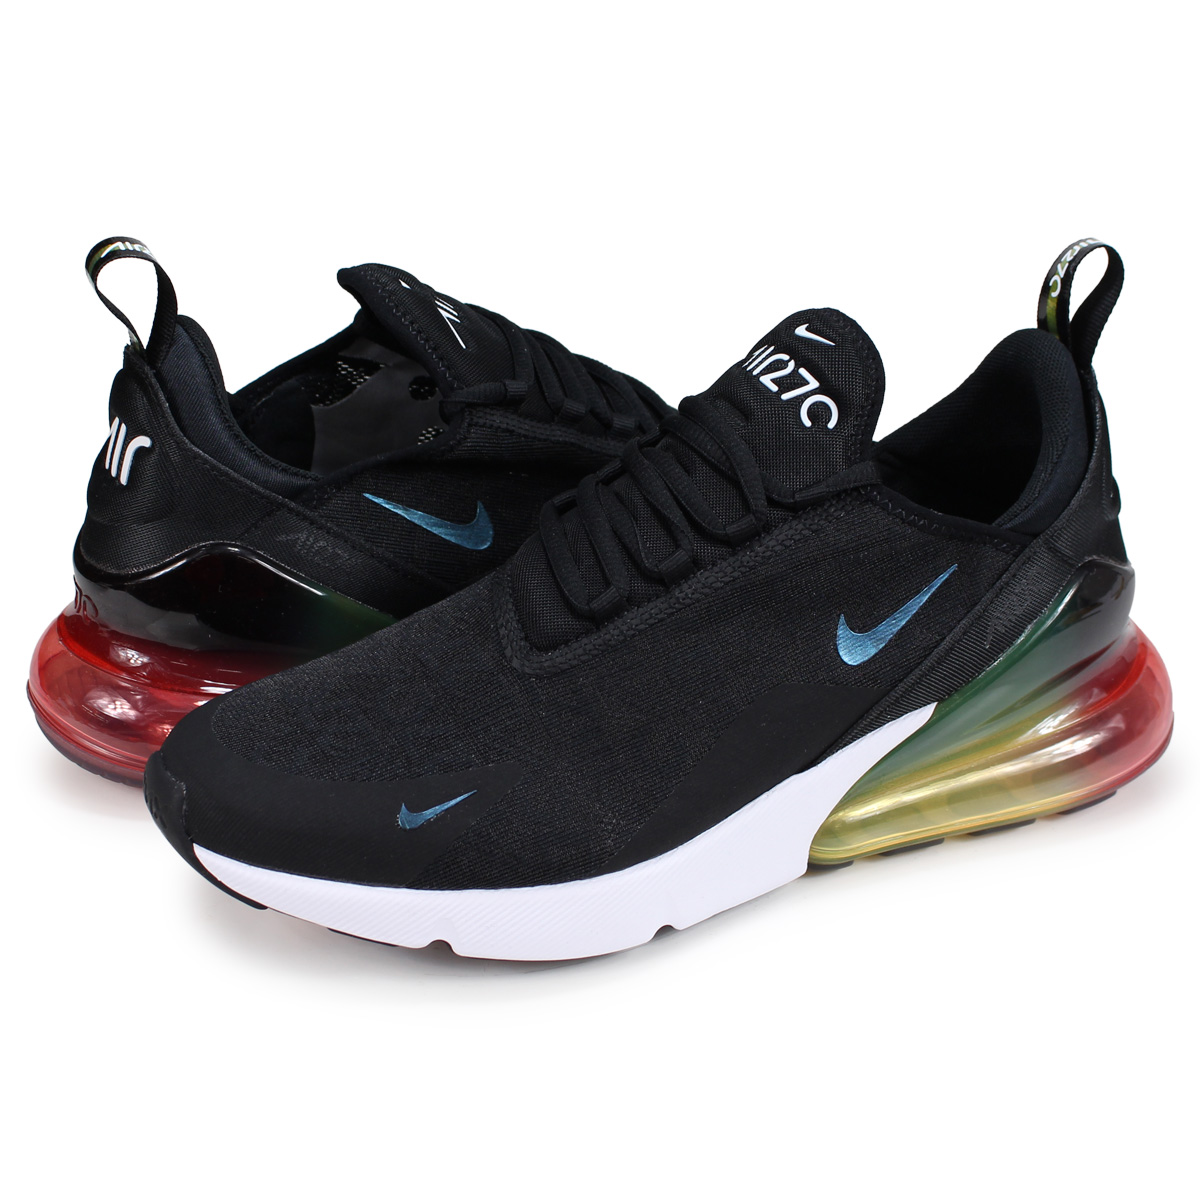 Nike NIKE Air Max 270 sneakers men AIR MAX 270 SE black AQ9164 003